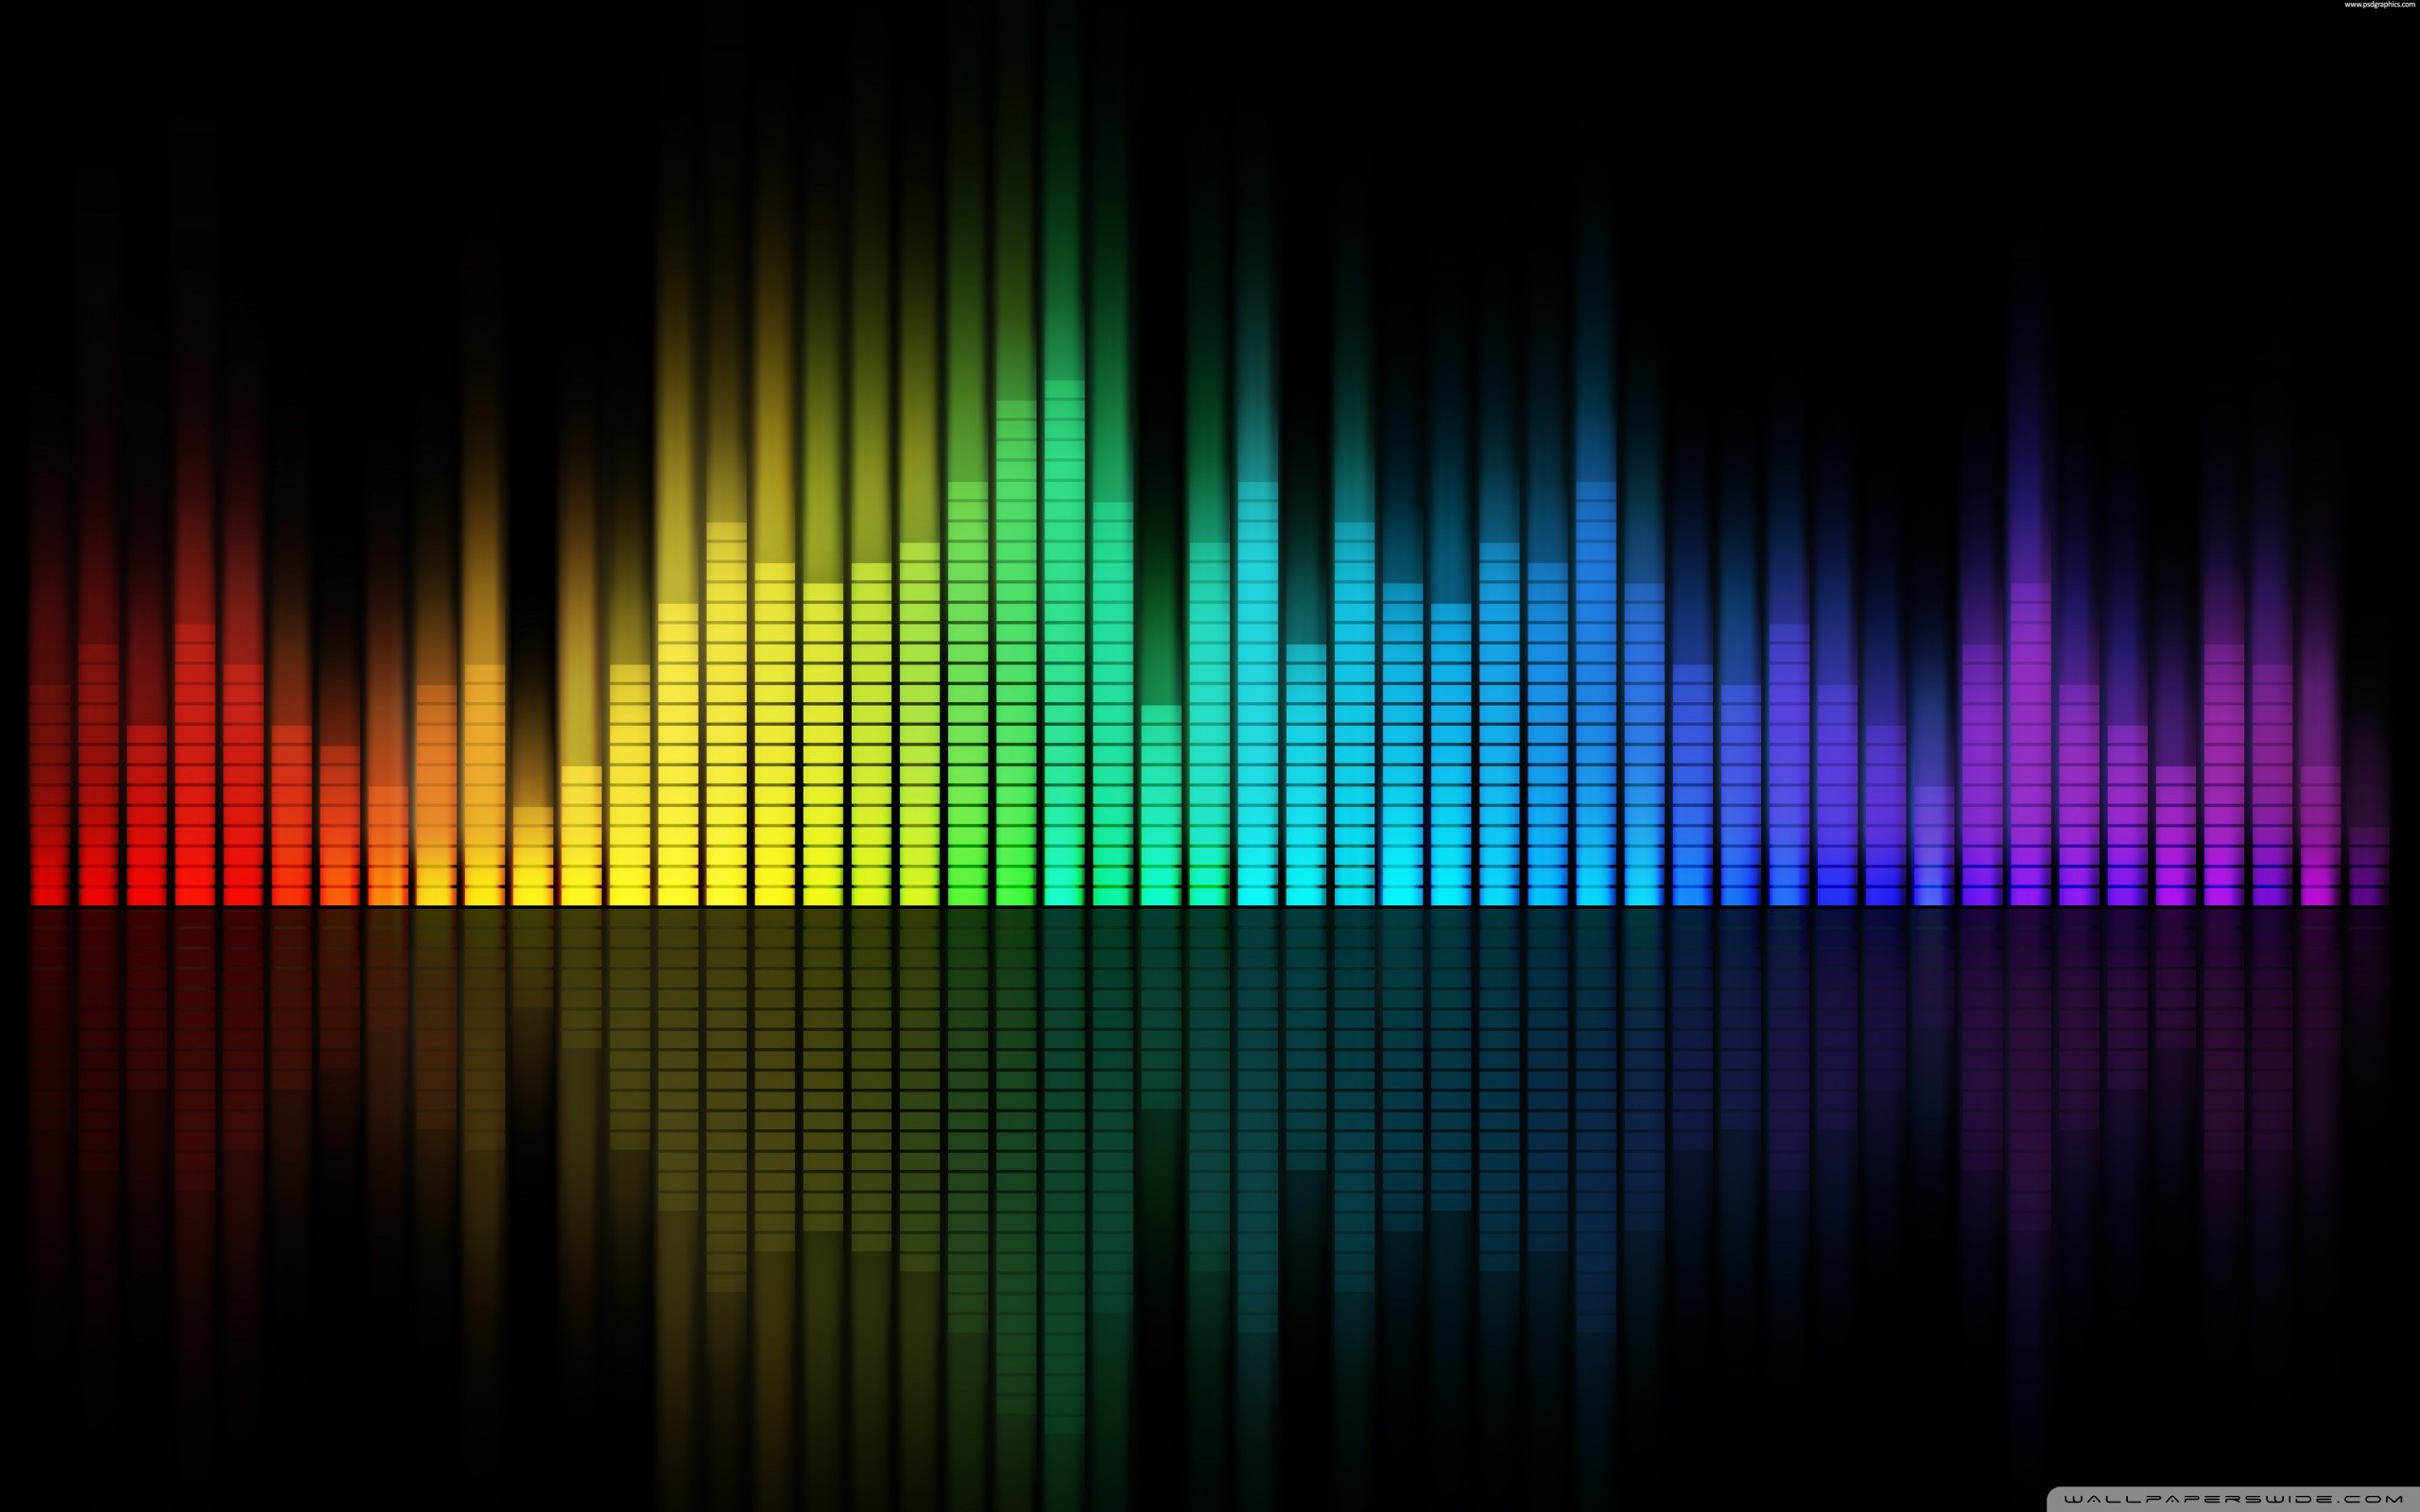 Music Wallpapers, Widescreen Wallpapers of Music, WP-WR-161